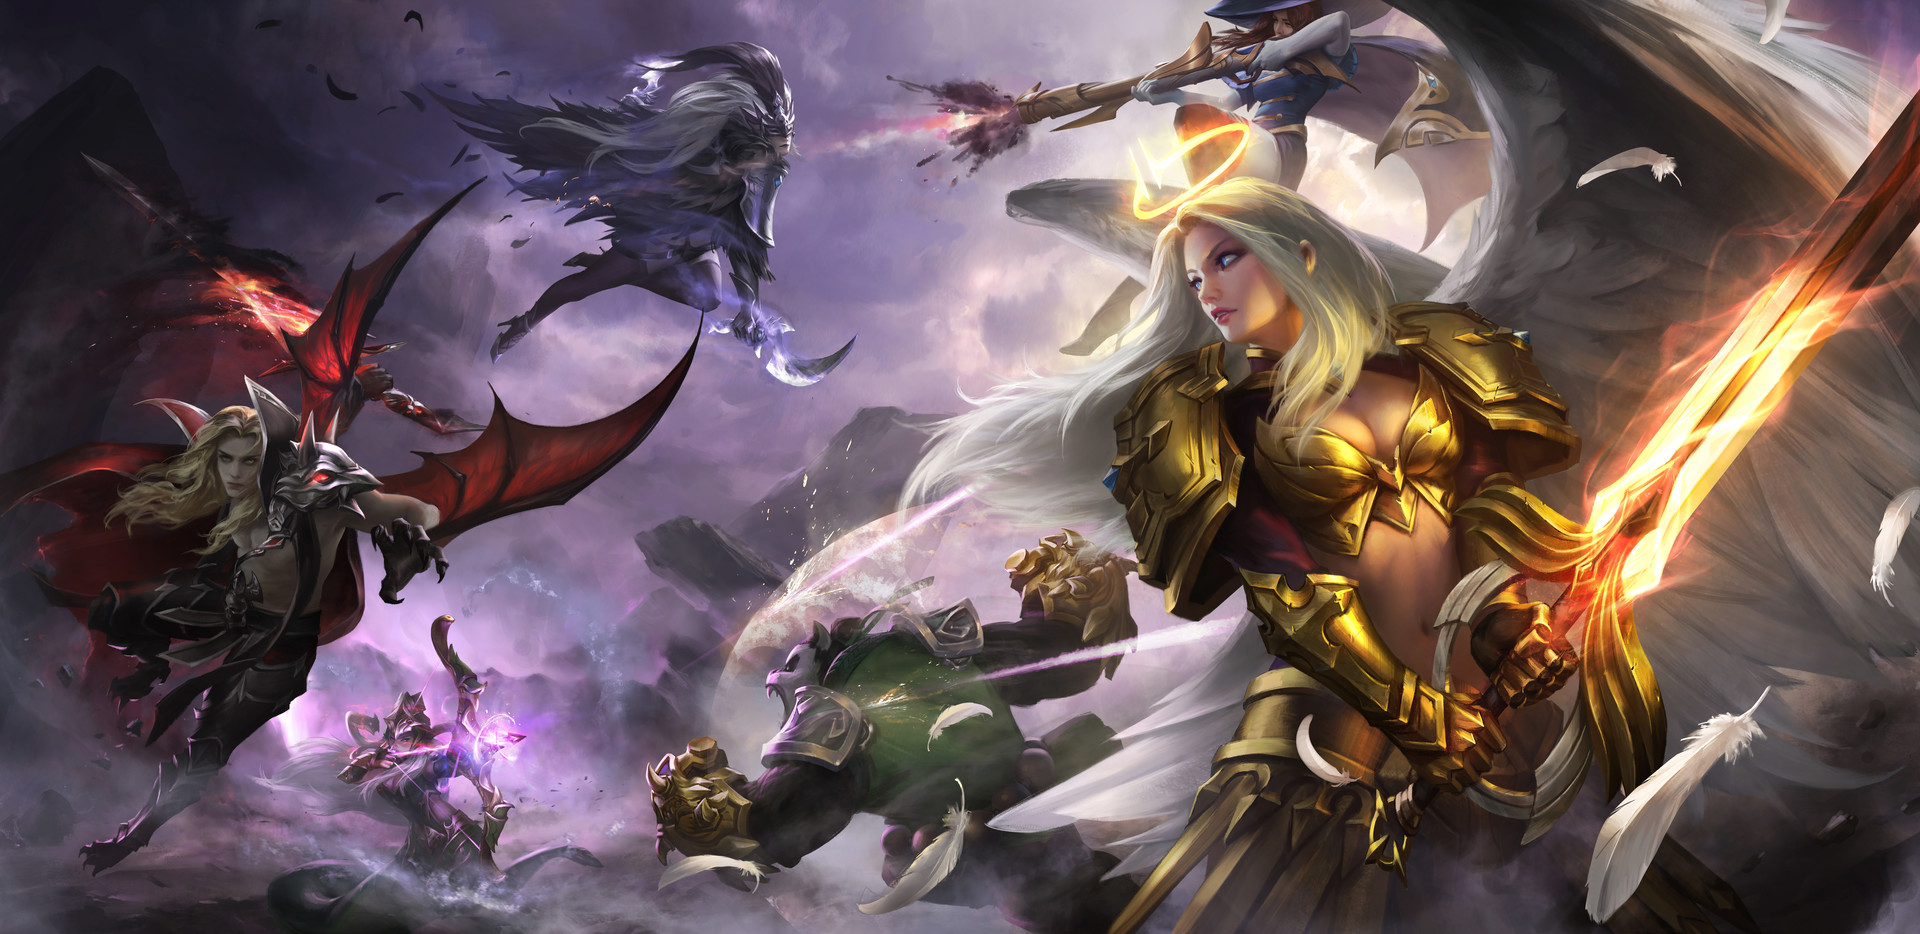 General 1920x934 fantasy girl battle fantasy art artwork Mobile Legends video games